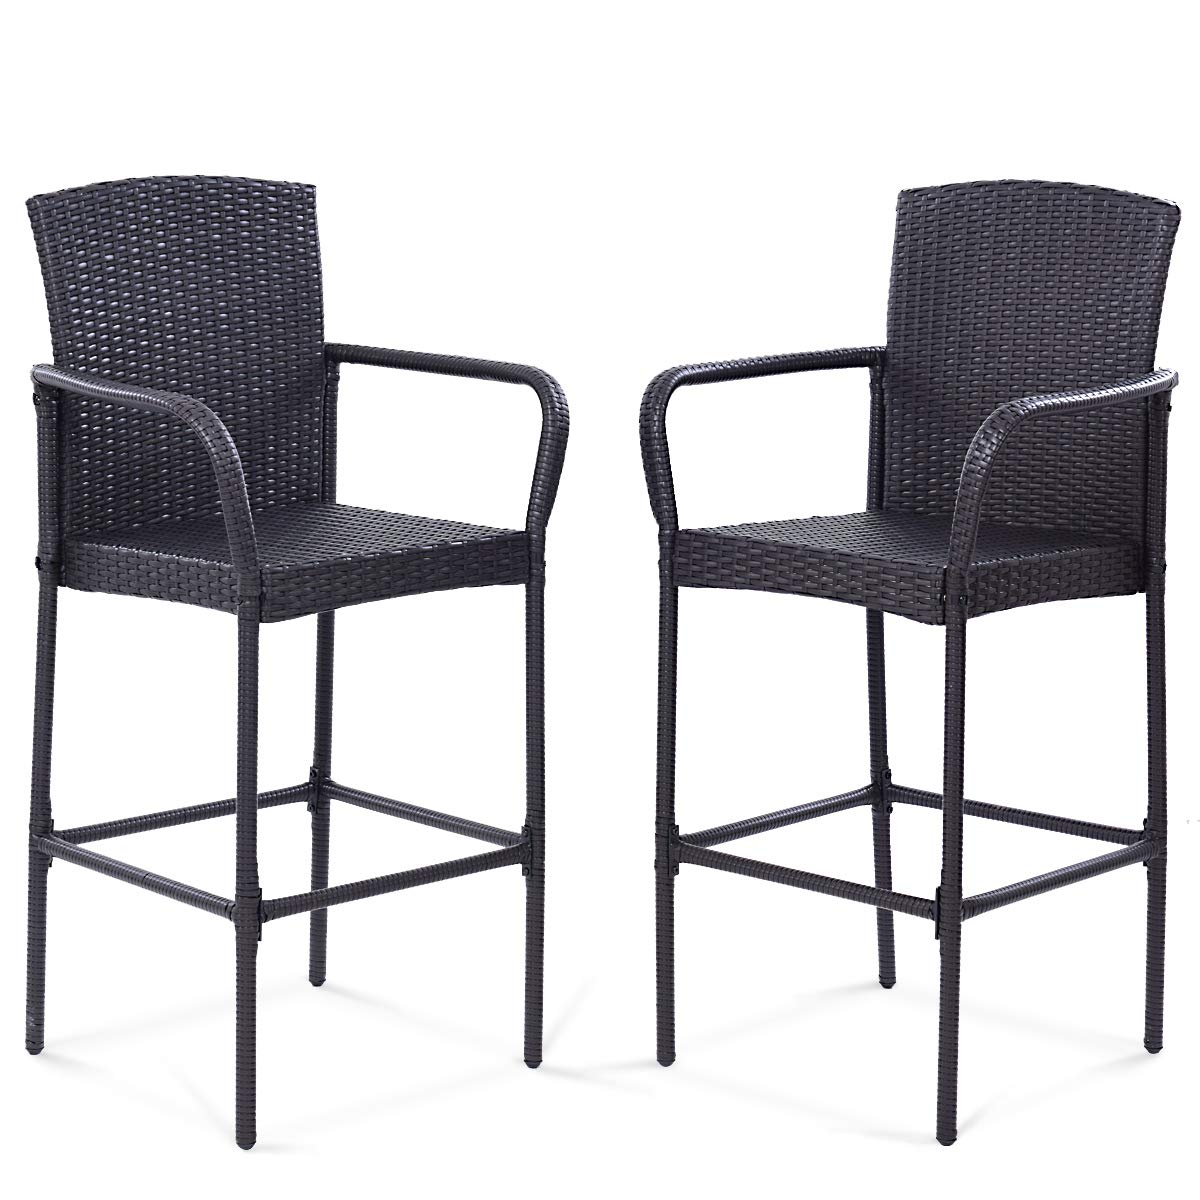 Tangkula Set of 2 Patio Bar Stools Indoor Outdoor Use Wicker Rattan Barstool with Footrest for Garden Pool Lawn Backyard Study Steel Frame Bar ChairsFurniture (Dark Brown 47'' H) (Mix Brown) by Tangkula